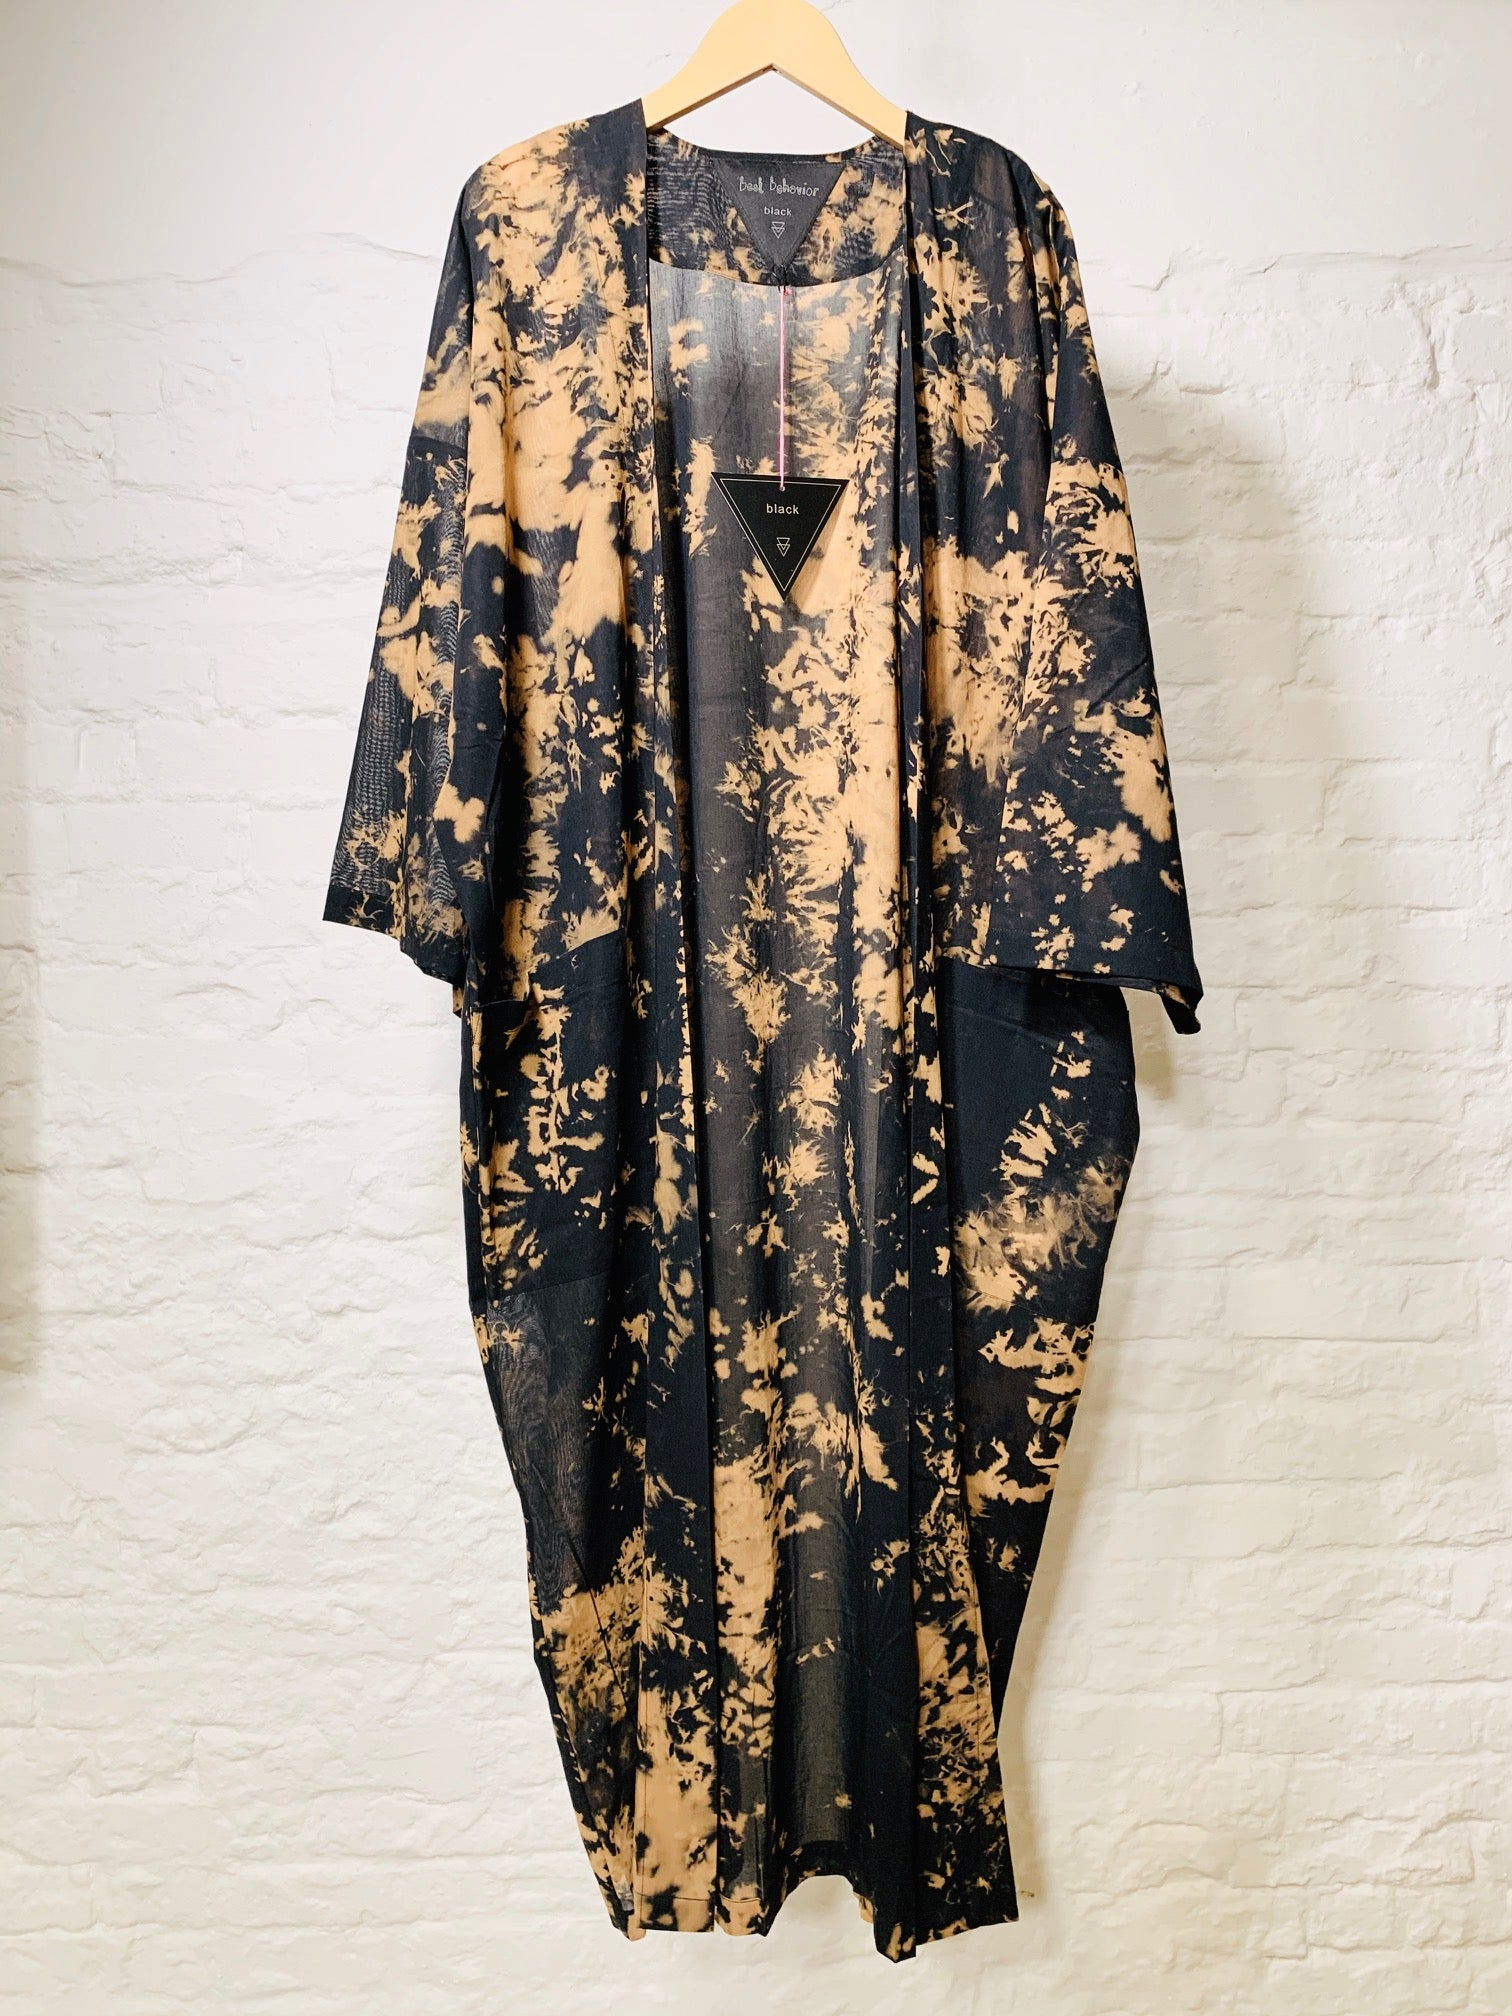 Dara robe brown black